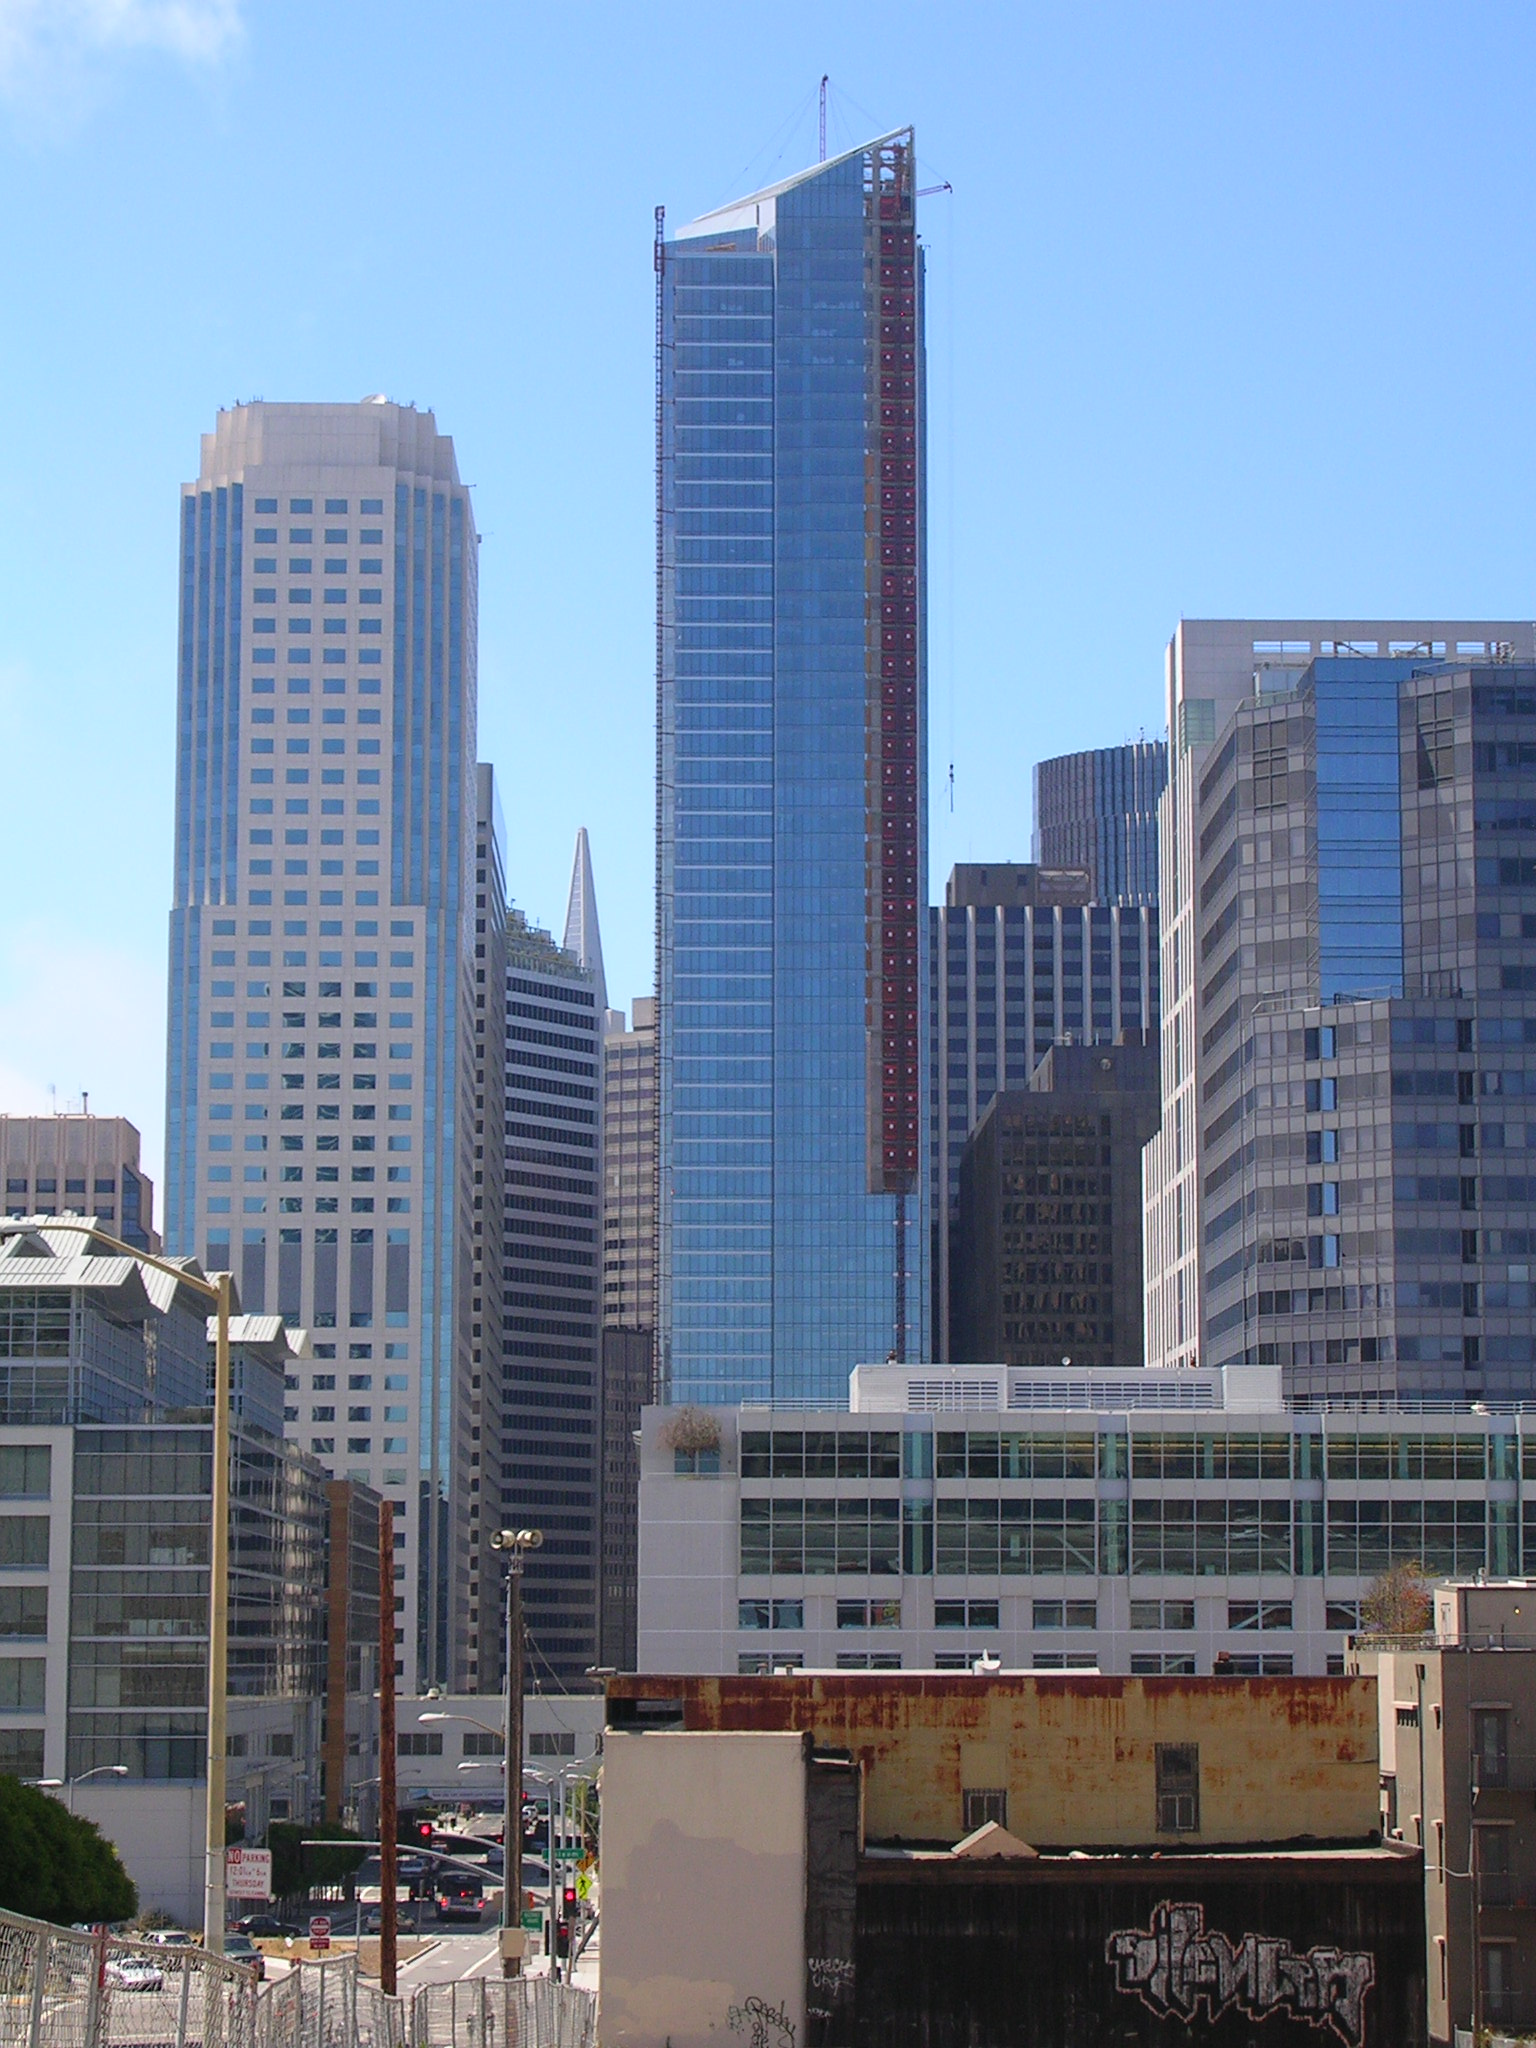 The Millennium Tower in 2008, photographed from afar.